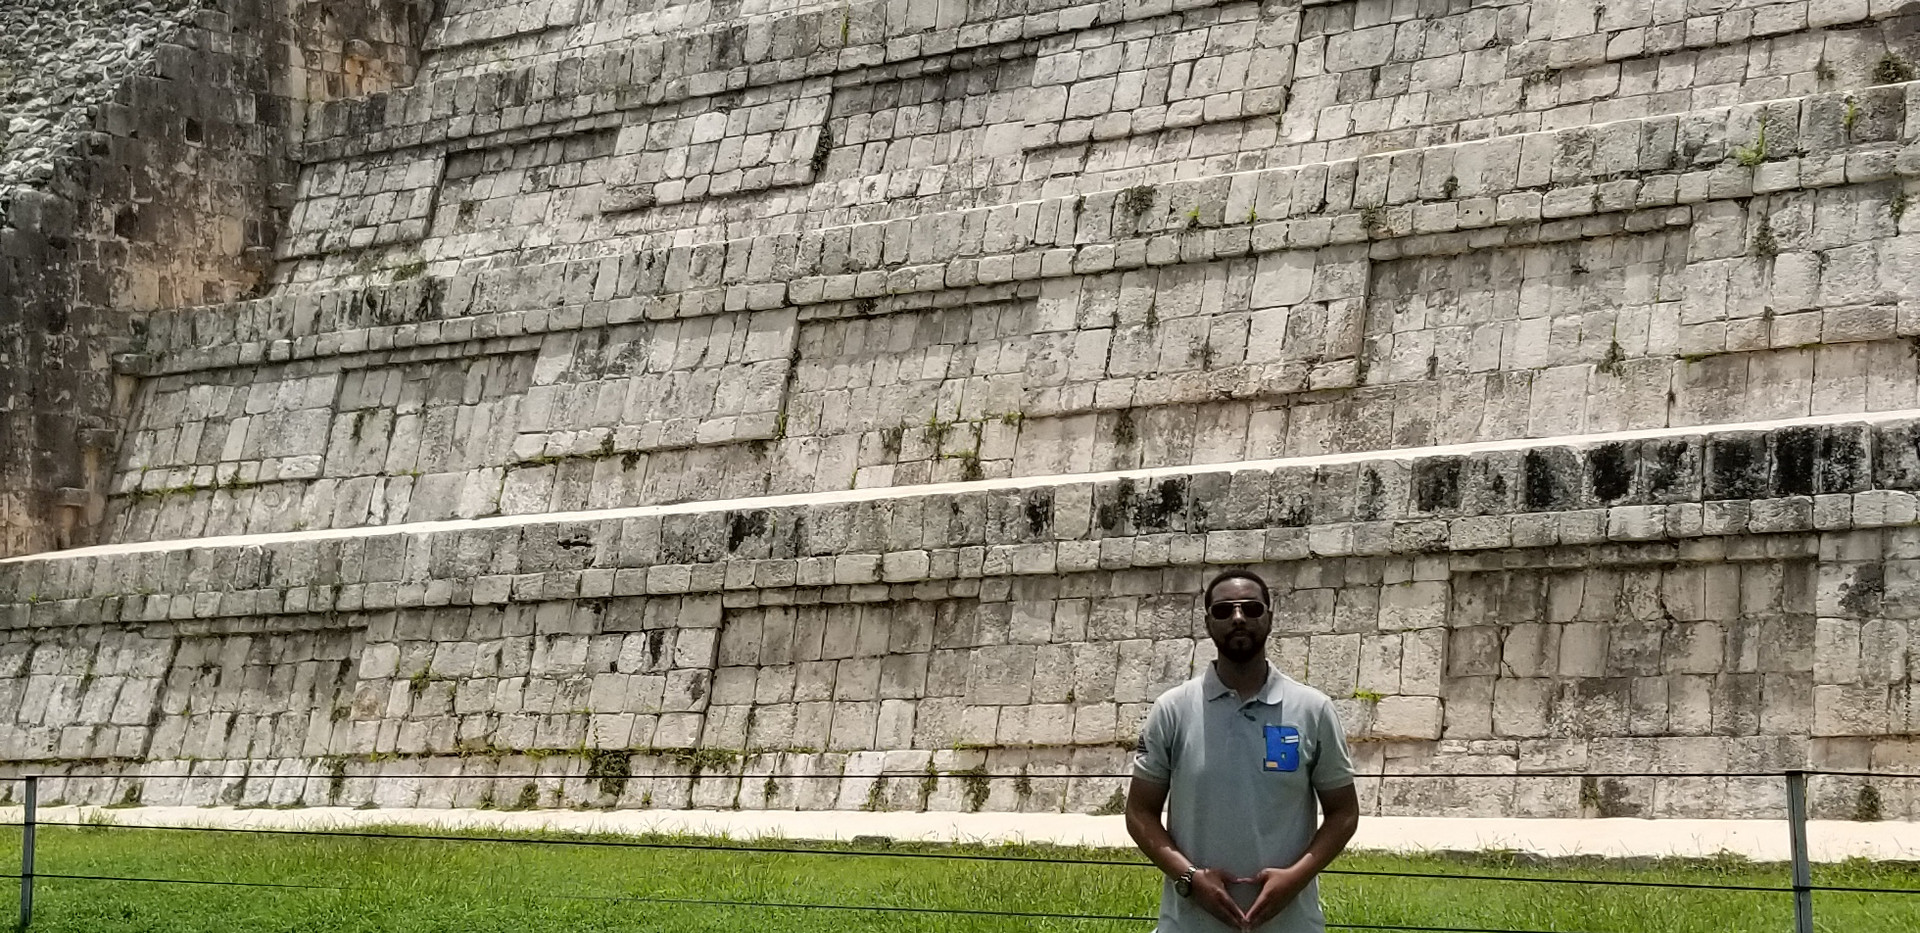 Pyramid Of Kukulcan in Mexico